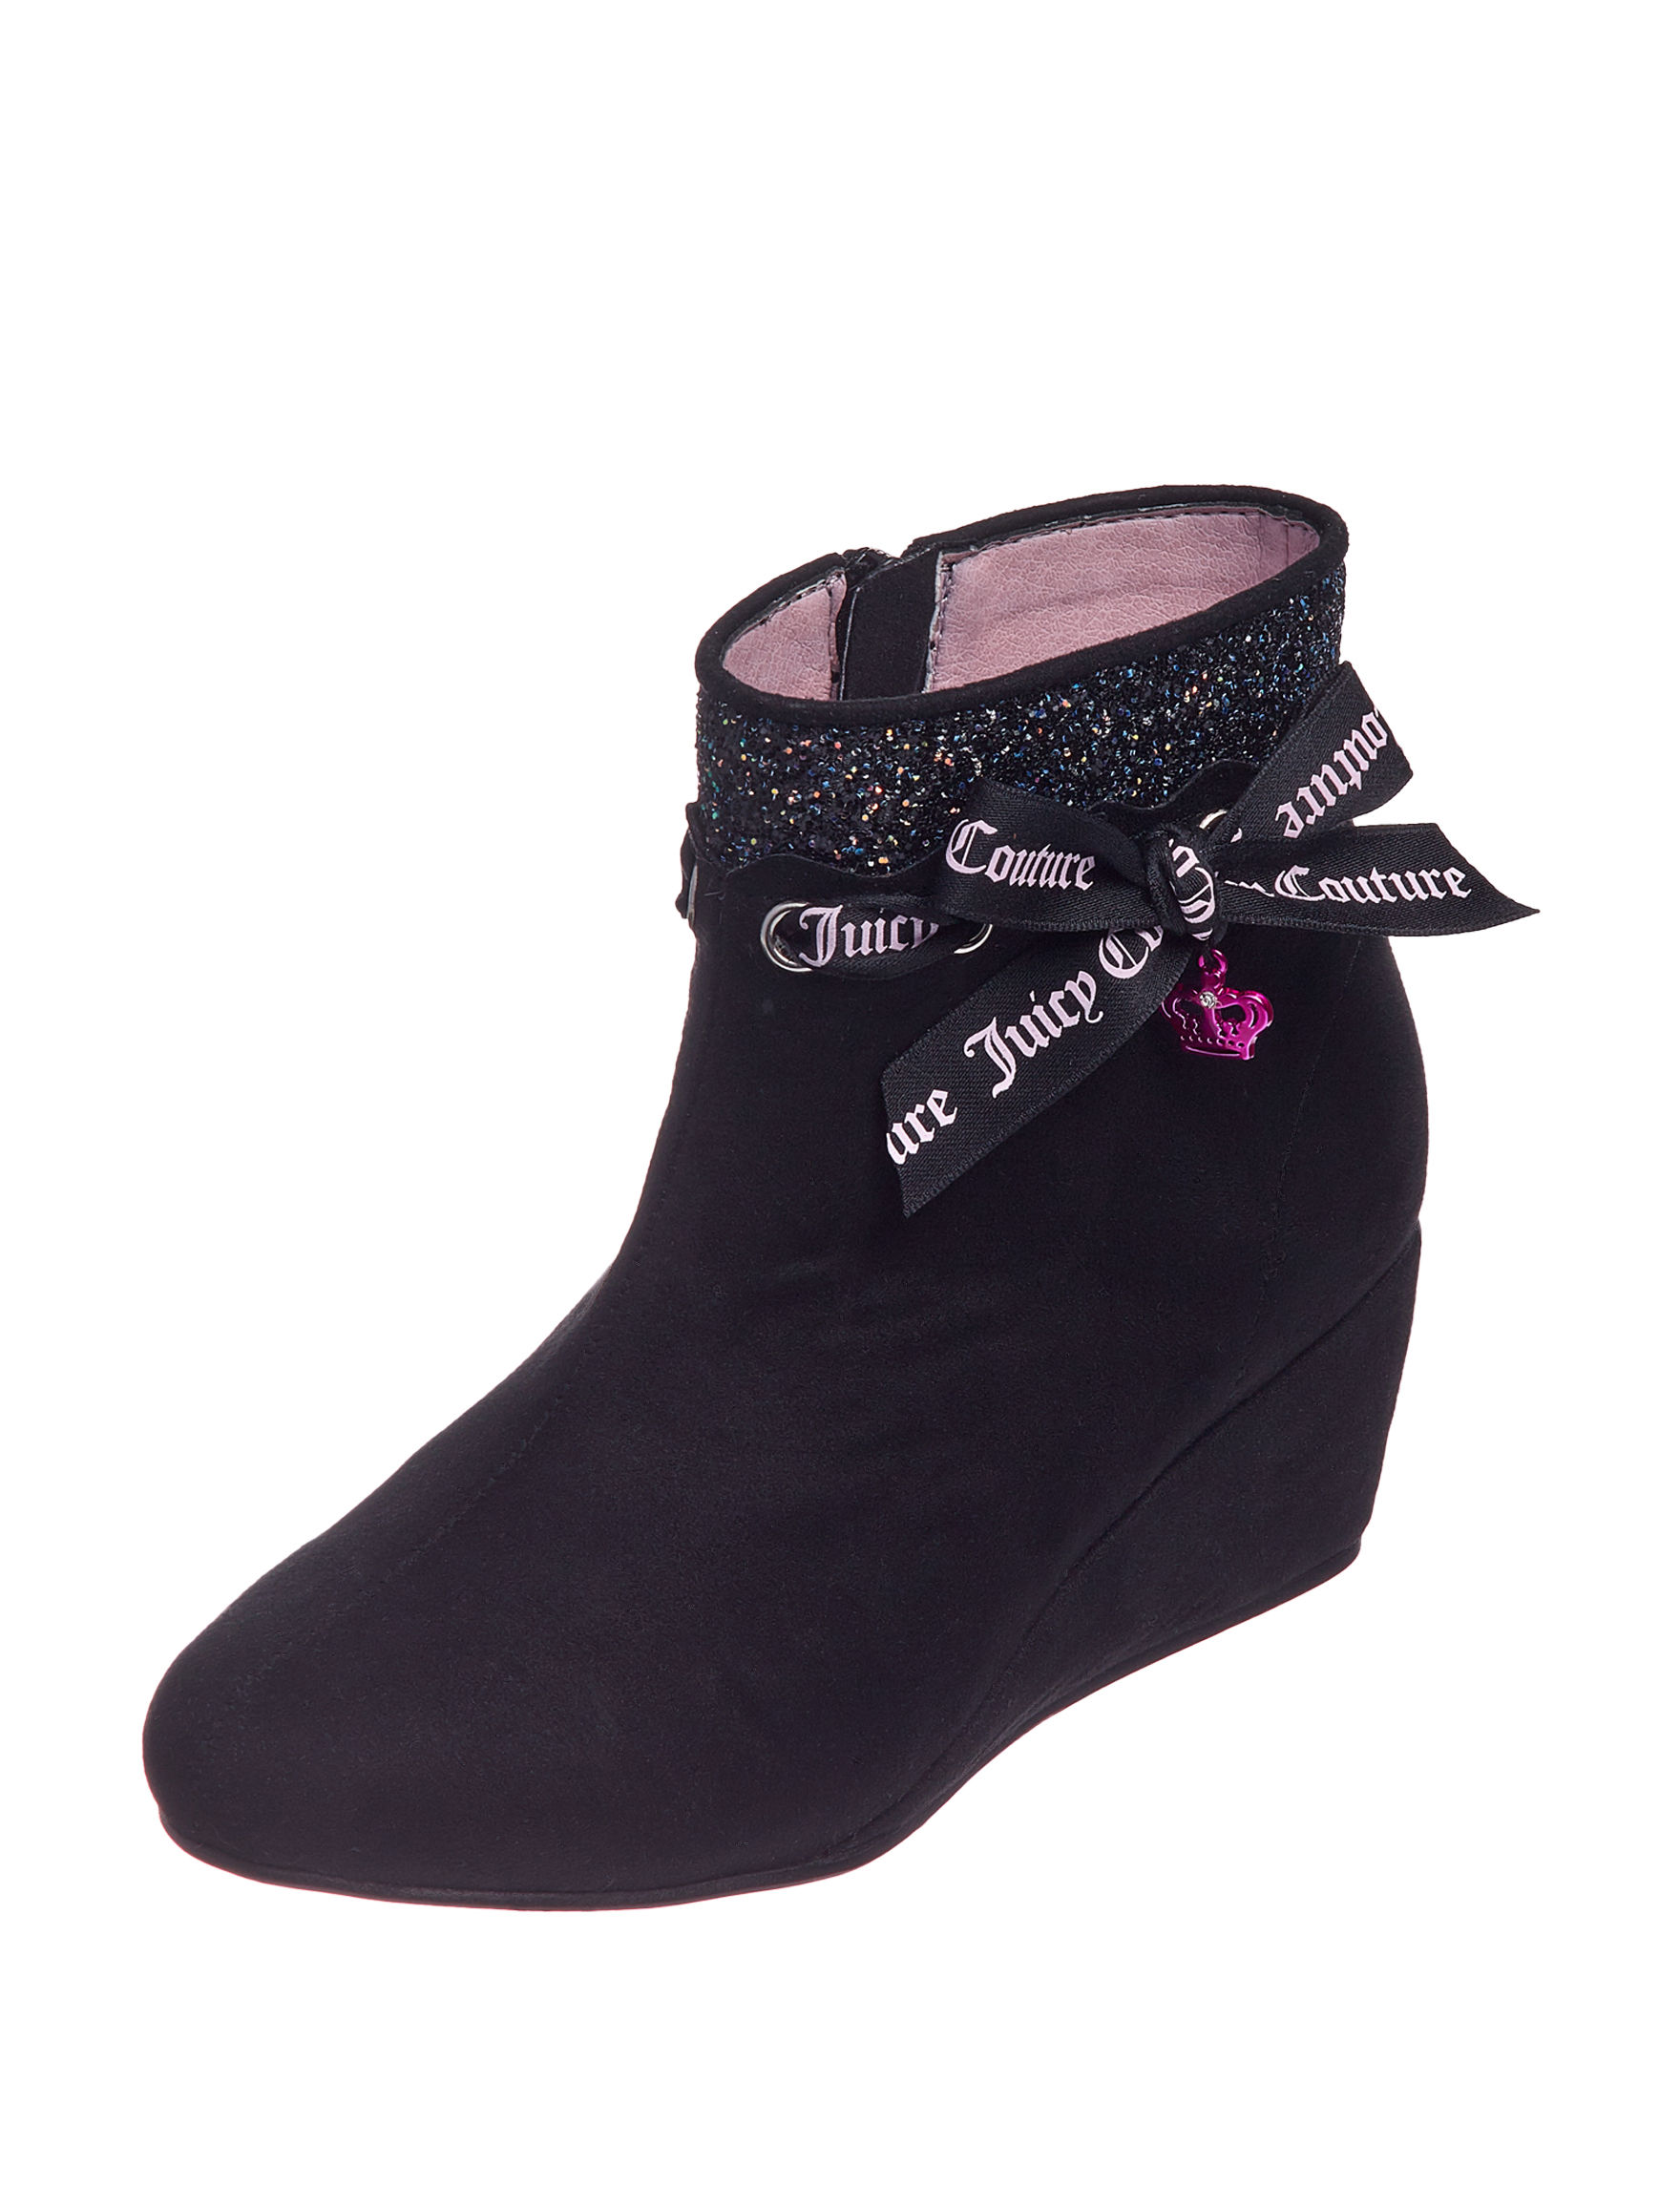 Juicy Couture Black Ankle Boots & Booties